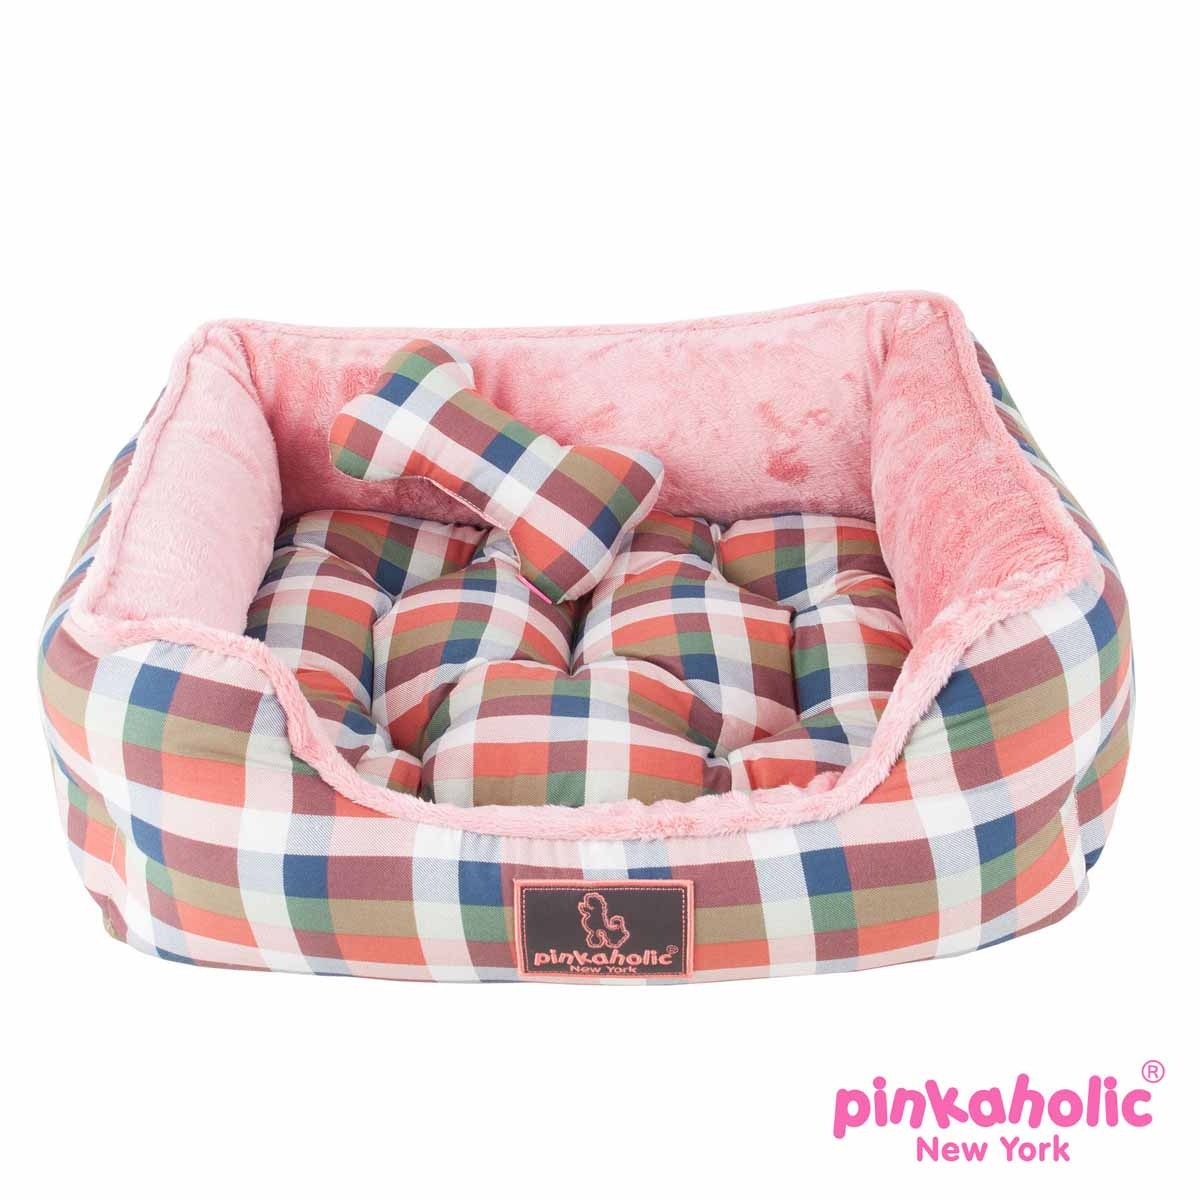 Amorette House Dog Bed By Pinkaholic Orange Baxterboo